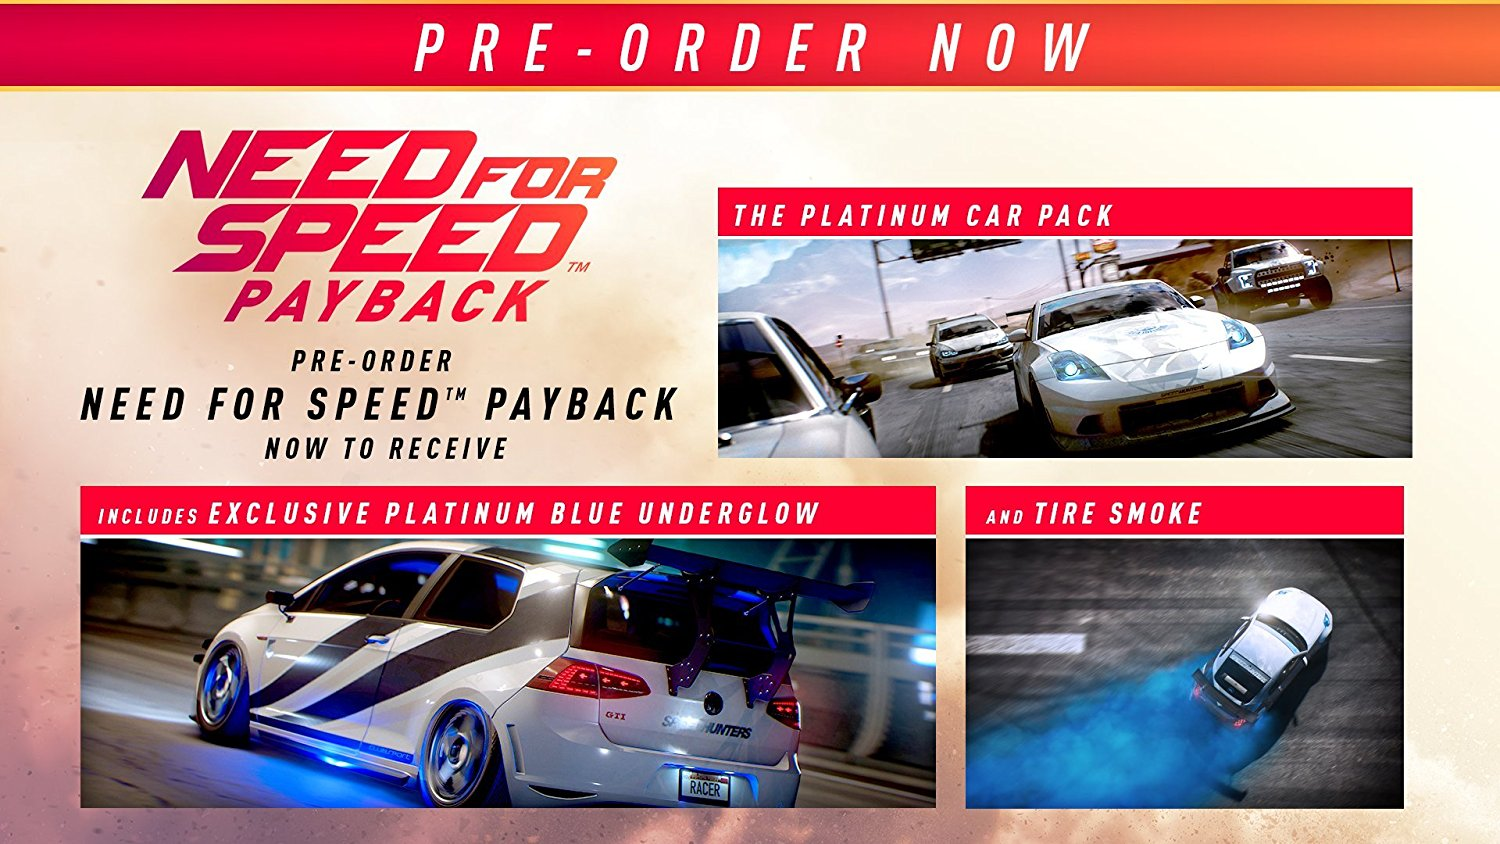 Need-for-Speed-Payback-PO